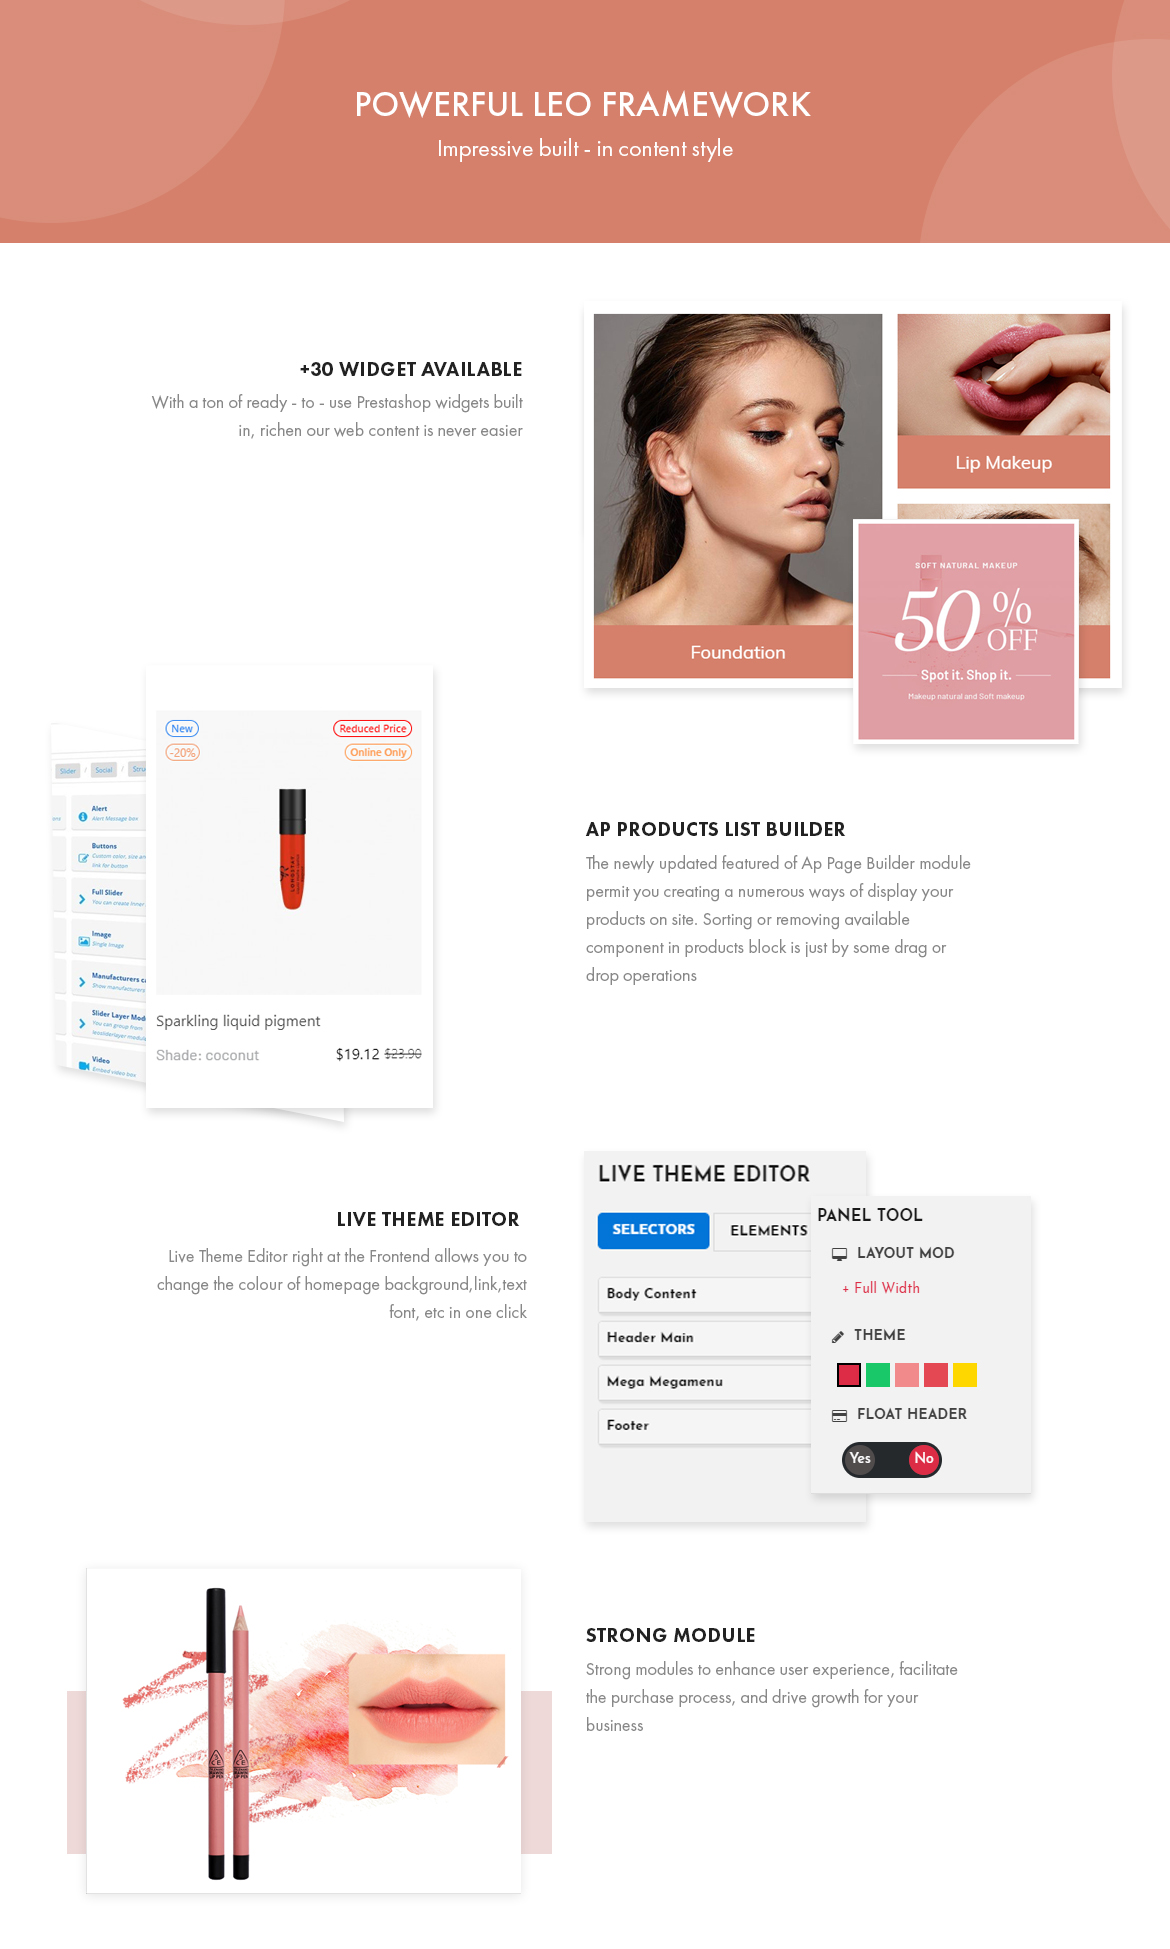 powerful prestashop framework - Leo Sooyoung - Cosmetics and Beauty Prestashop Theme